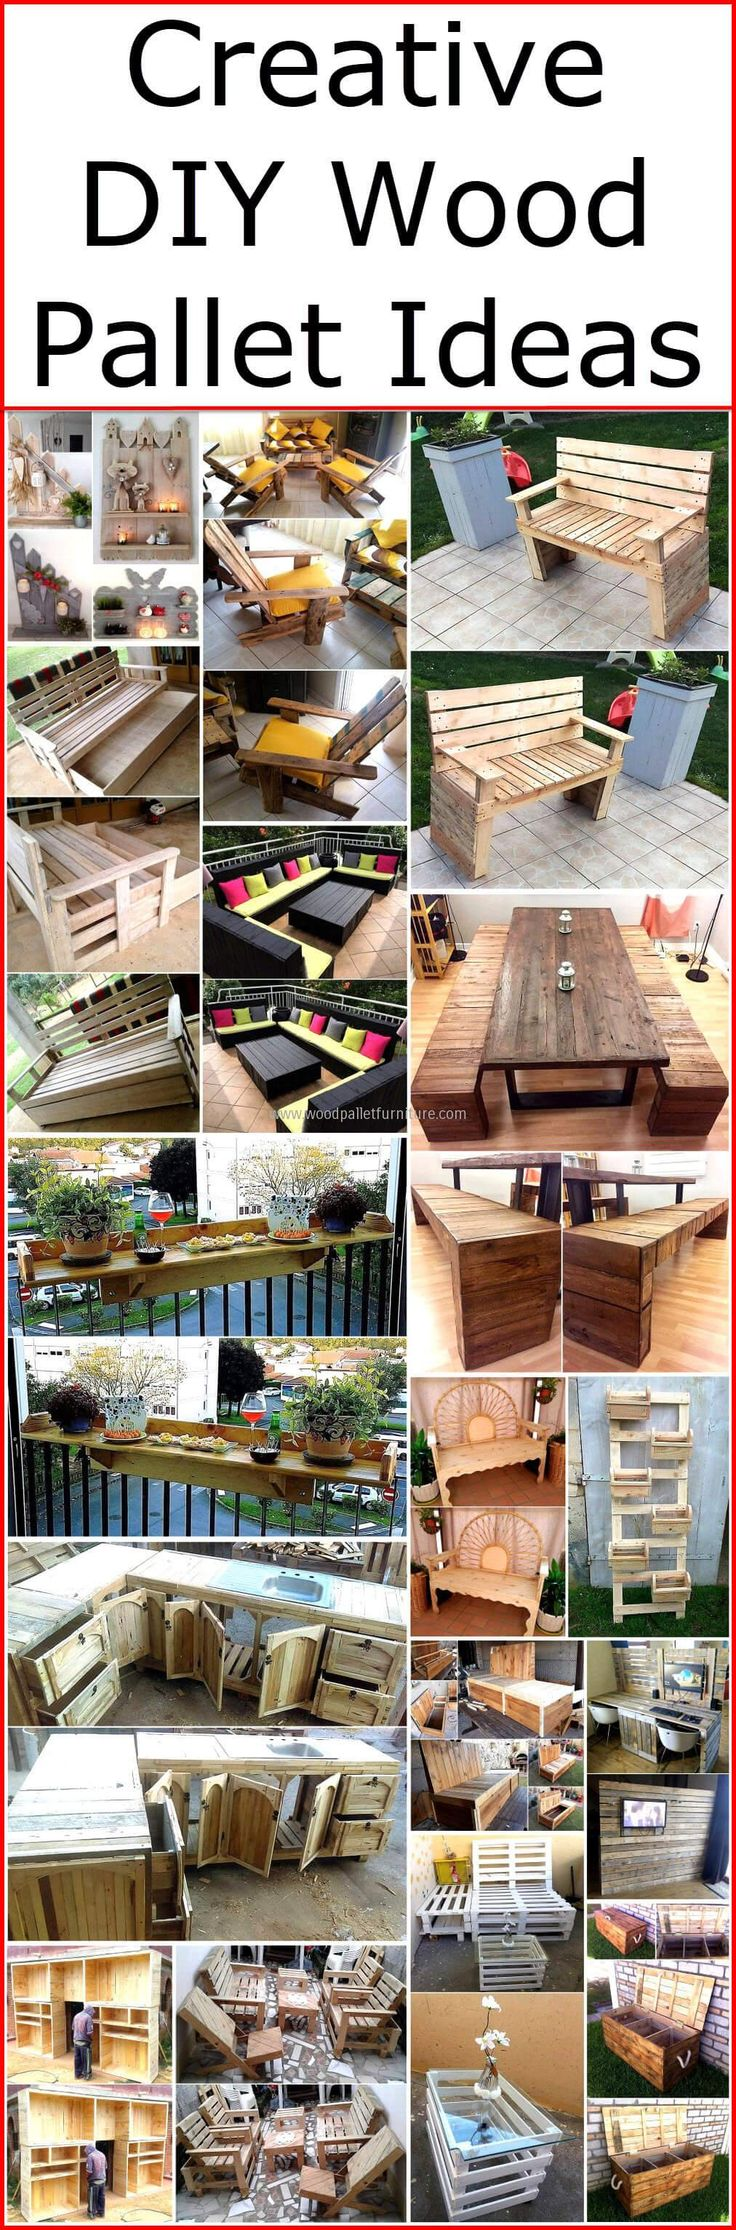 Wood pallets are first choice to embellish your place inexpensively. Re-transformed wood pallets to have astonishing collection at your place. We have provided you creative DIY pallet ideas of crafting house fitting by reusing wood pallets. That will be helpful for you to decor your place spectacularly, for sure. Map out unorthodox look for your place to give fresh and attracting view by using these wonderful creative ideas.